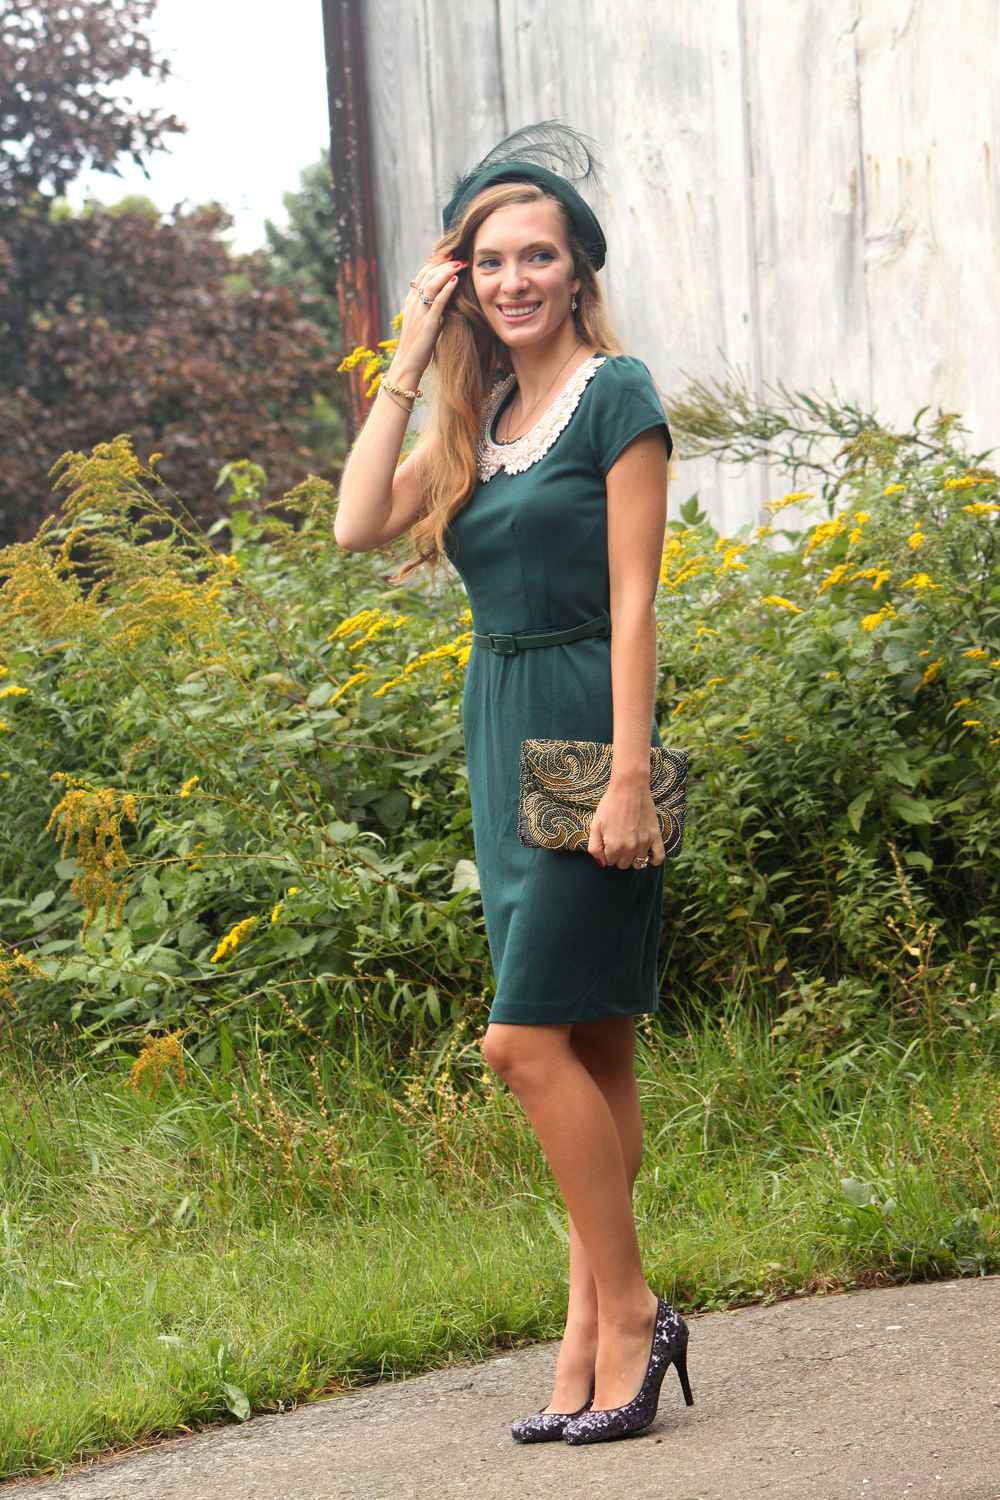 viintage fall outfit